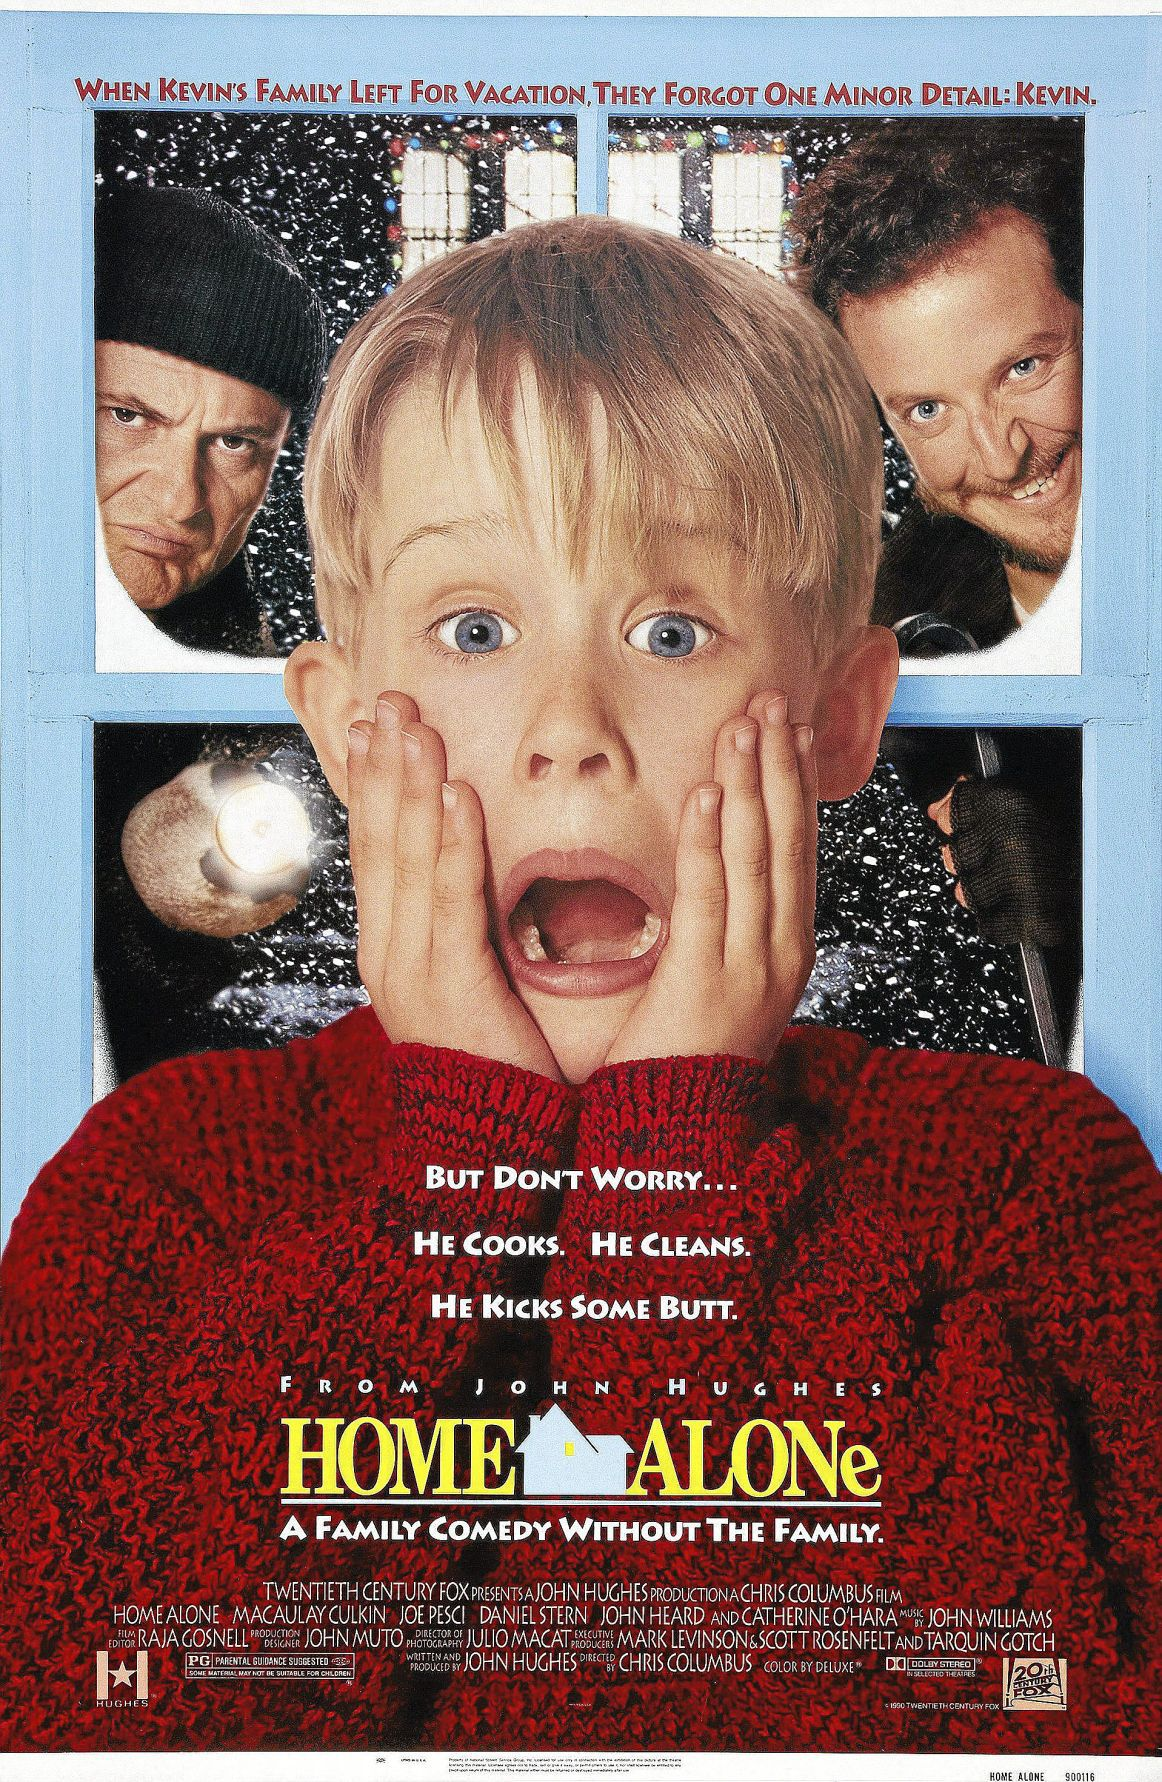 Try out our holly jolly Christmas movie quiz